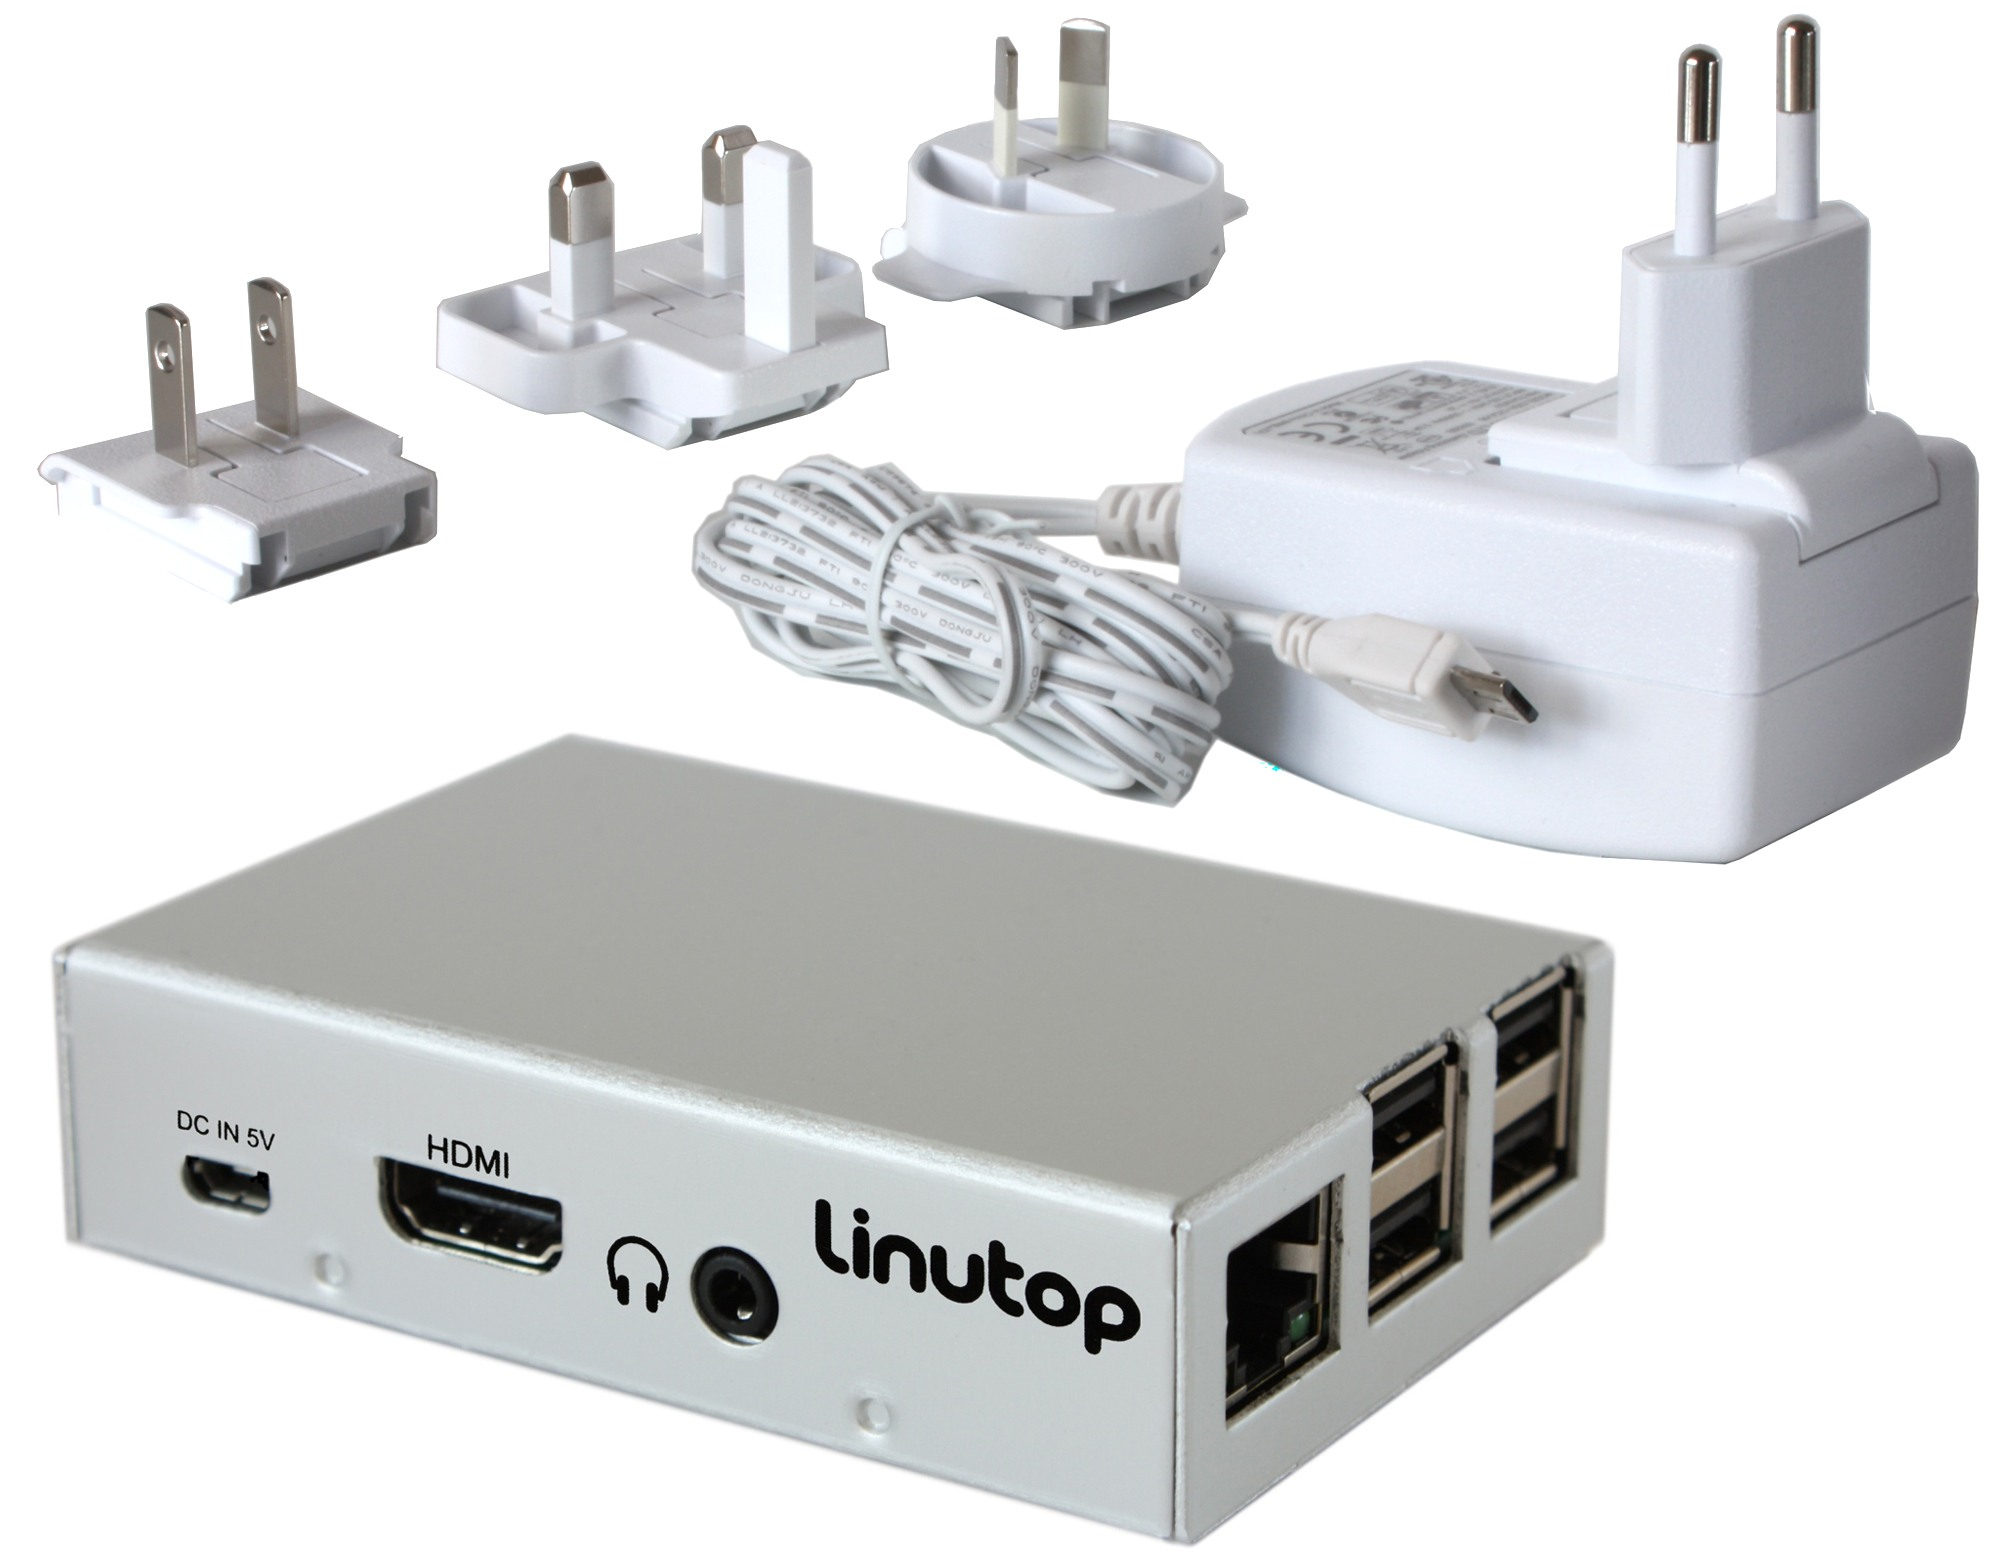 mini pc fanless linutop XS and power adapter